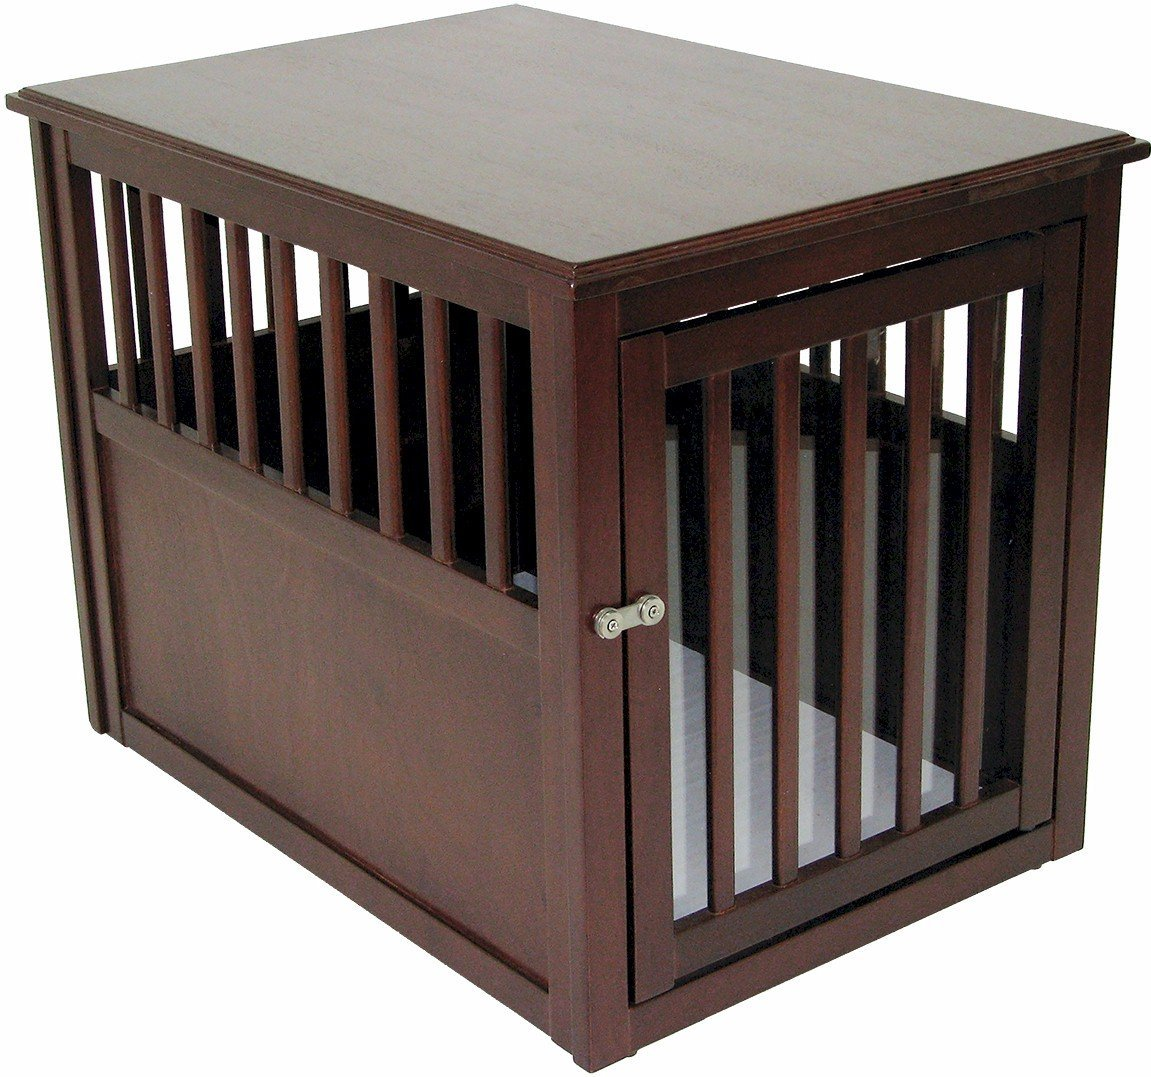 Merveilleux Amazon.com: Crown Pet Products Pet Crate Wood Dog Crate Furniture End  Table, Medium Size With Espresso Finish: Pet Supplies